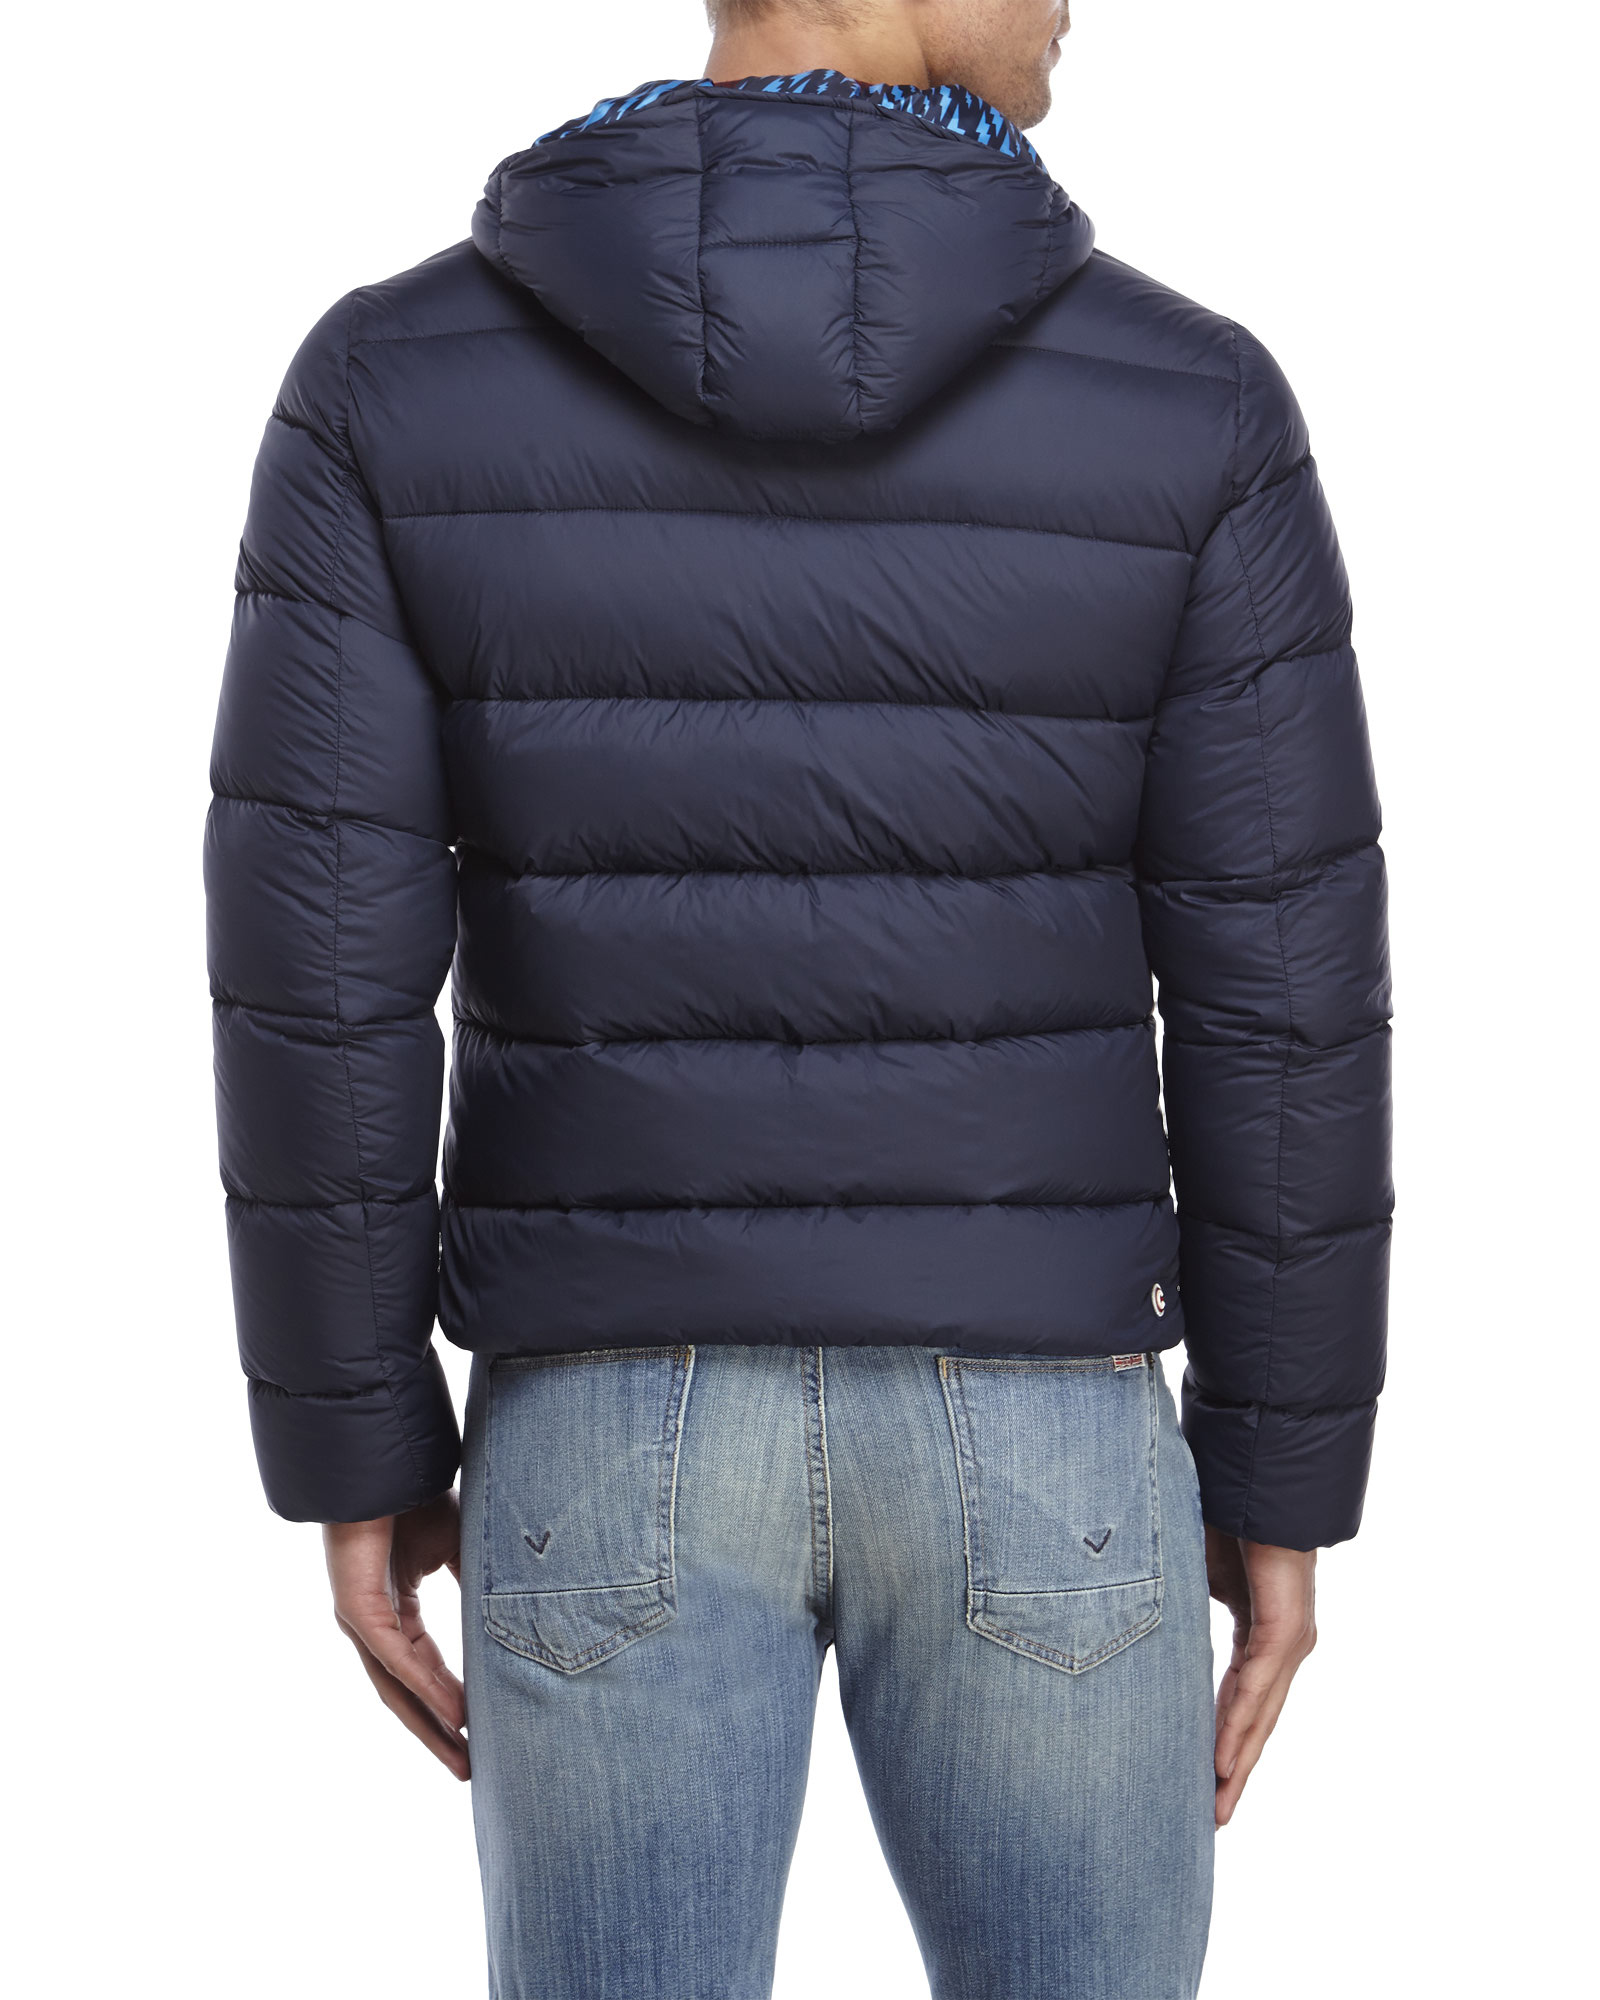 Buy Cheap Best Seller Cheap Sale 2018 New hooded parka coat - Blue Colmar Cheap Sale View New Lower Prices wvLuihy